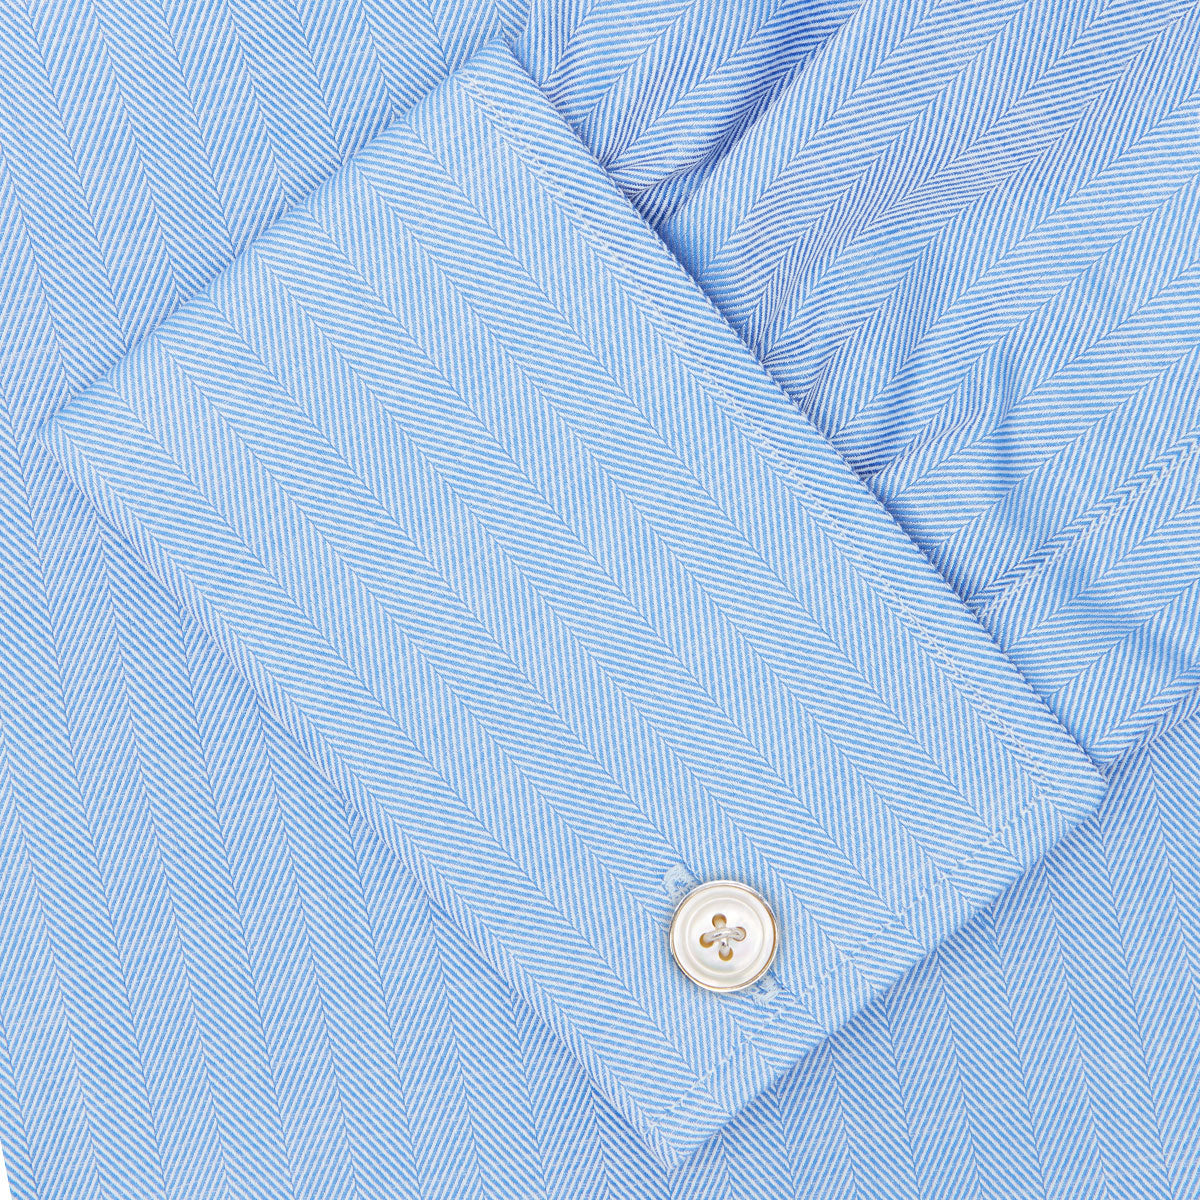 Blue Herringbone Superfine Cotton Shirt with T&A Collar and Double Cuffs